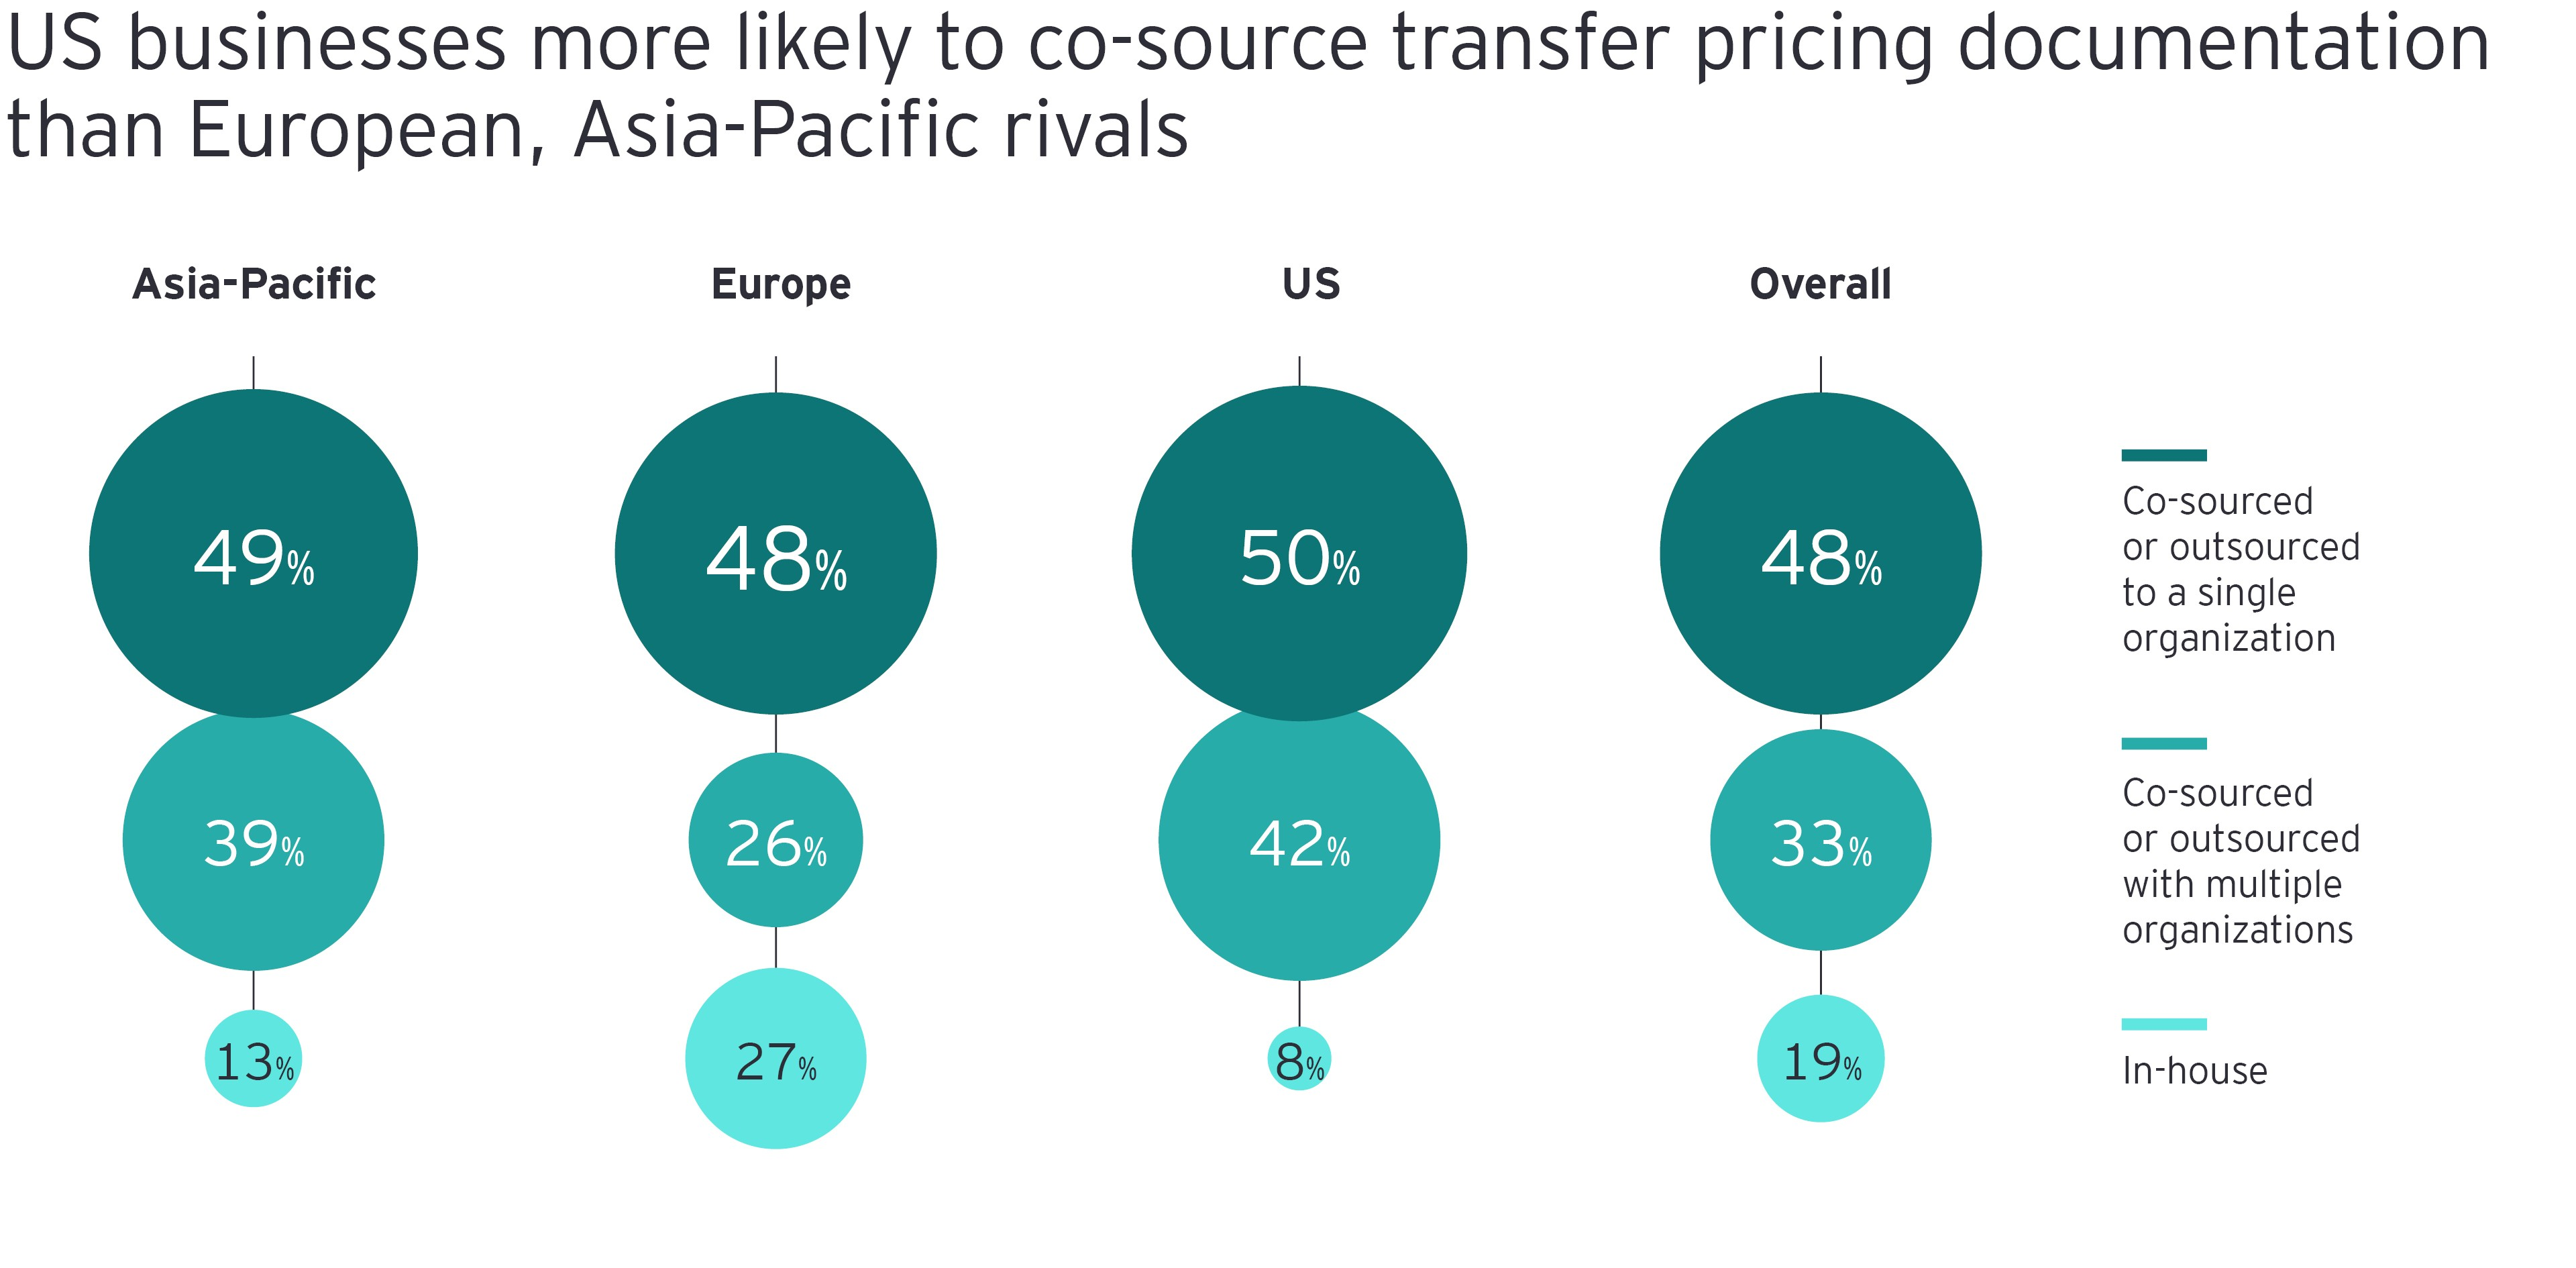 US businesses more likely to co-source transfer pricing documentation